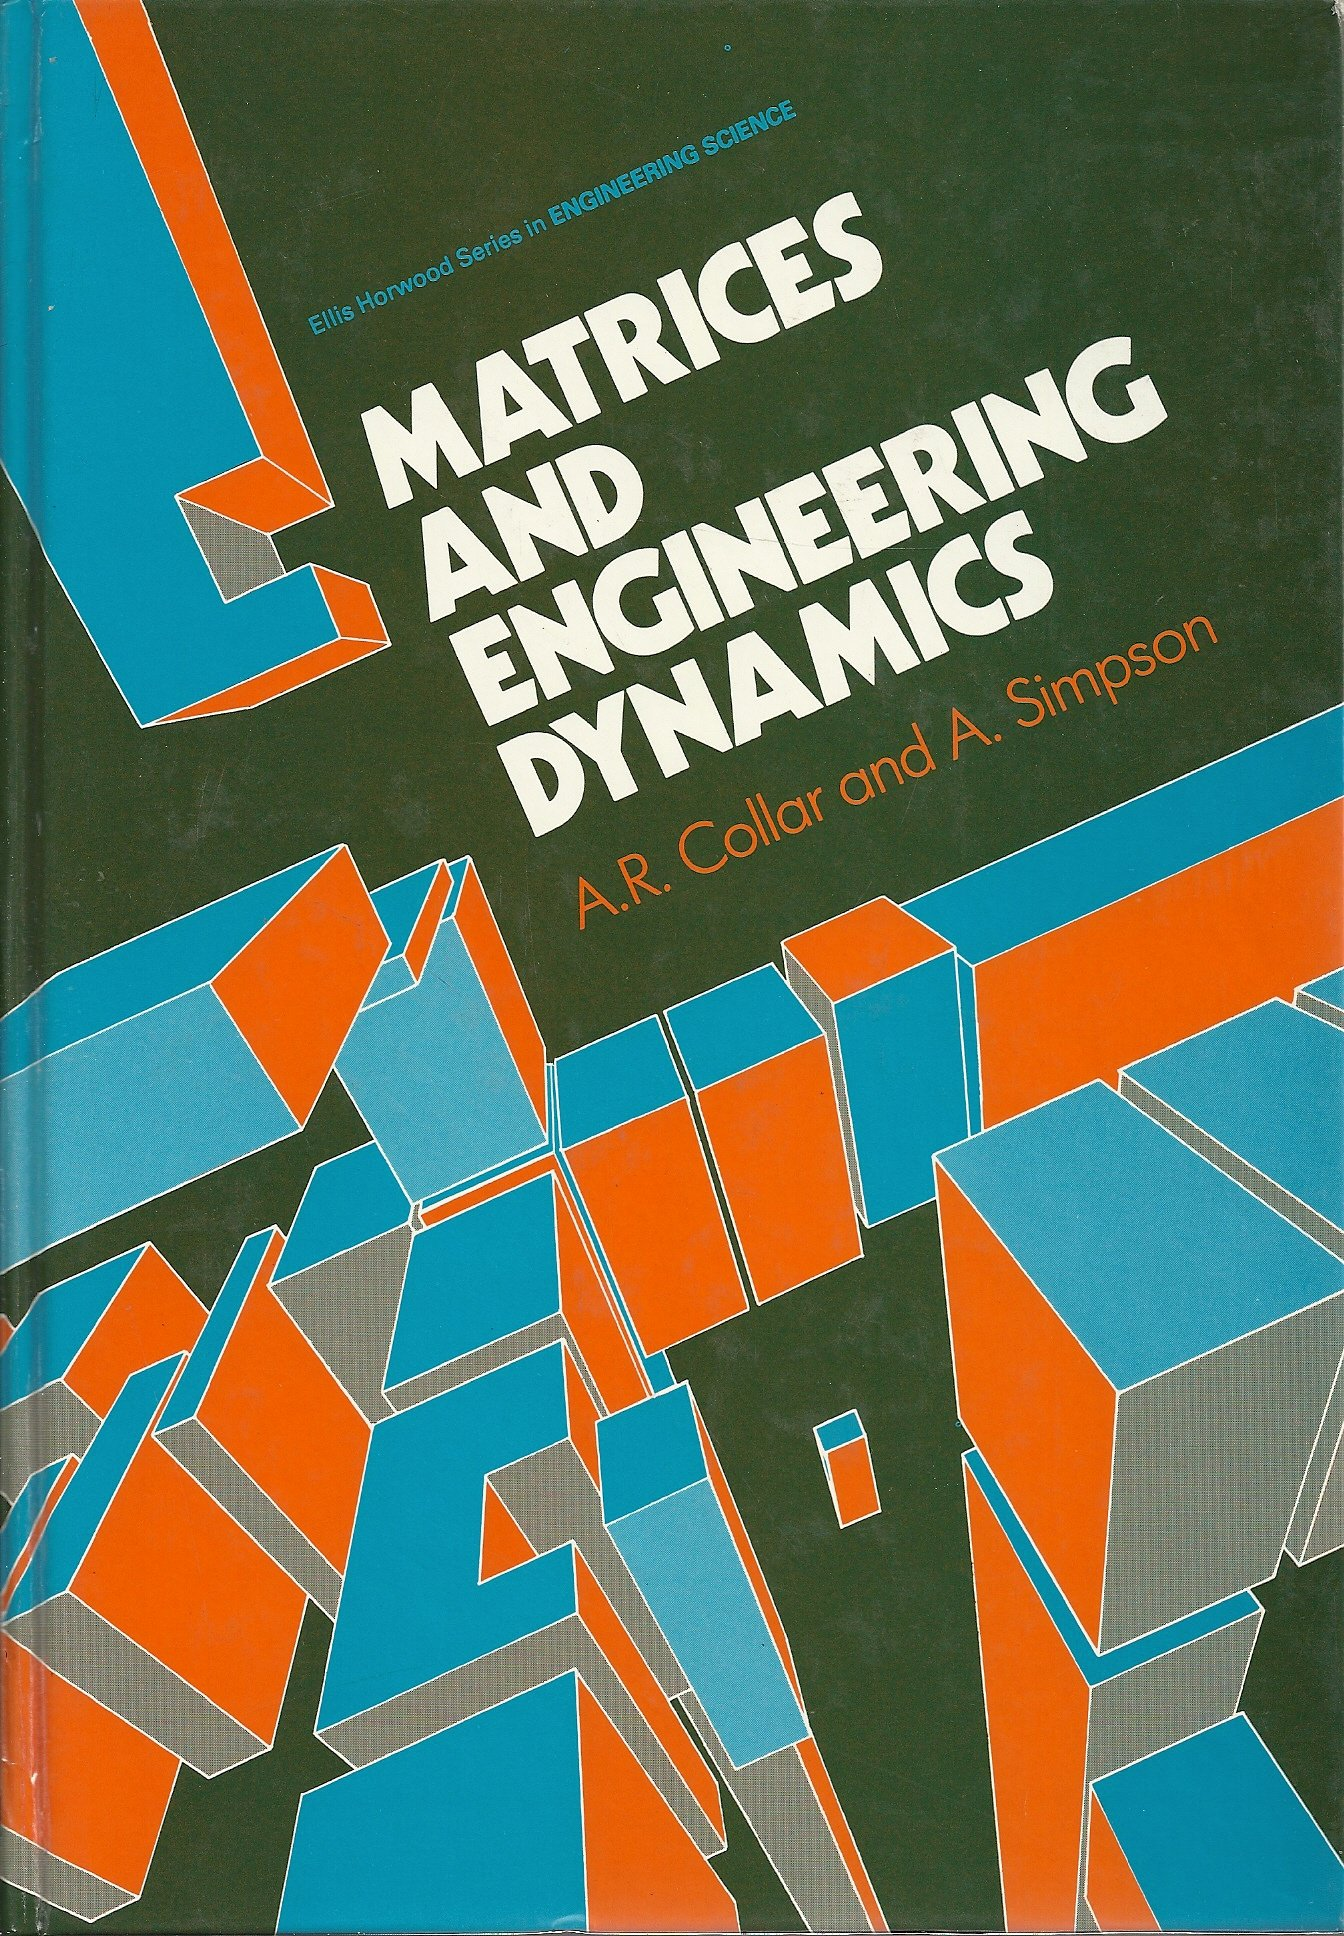 Matrices and Engineering Dynamics: A   R  Collar, A  Simpson